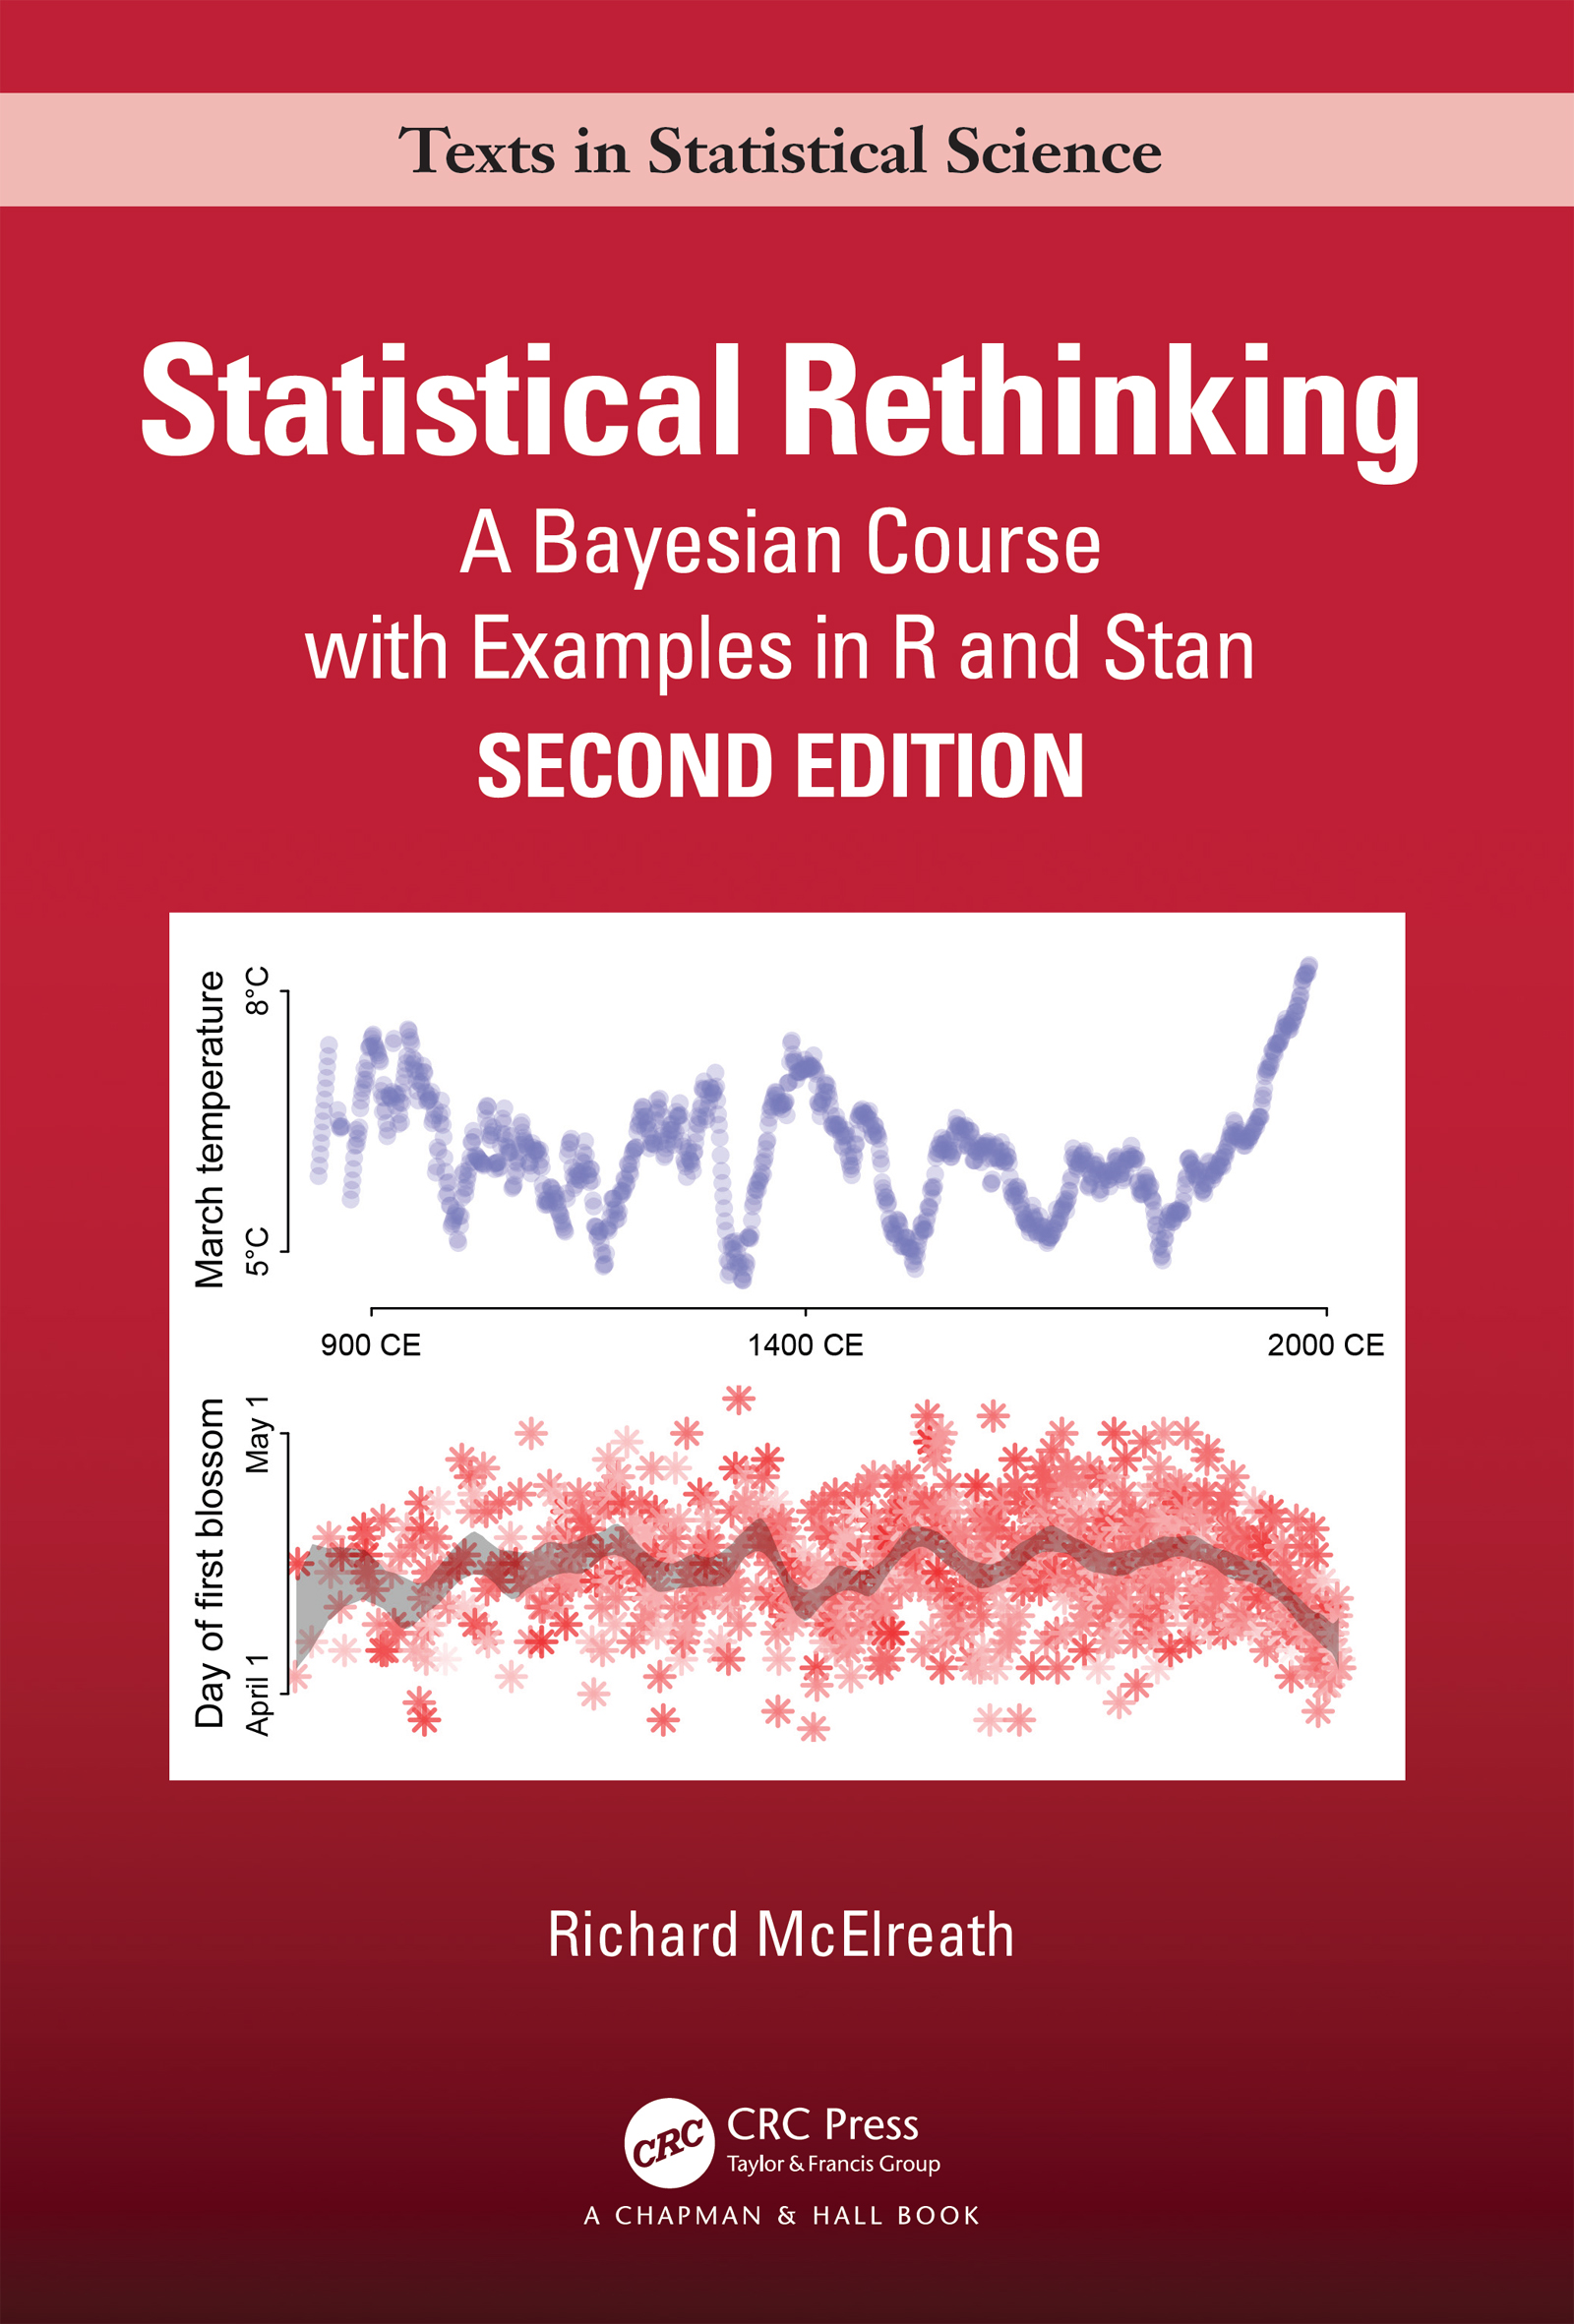 Statistical Rethinking: A Bayesian Course with Examples in R and STAN book cover